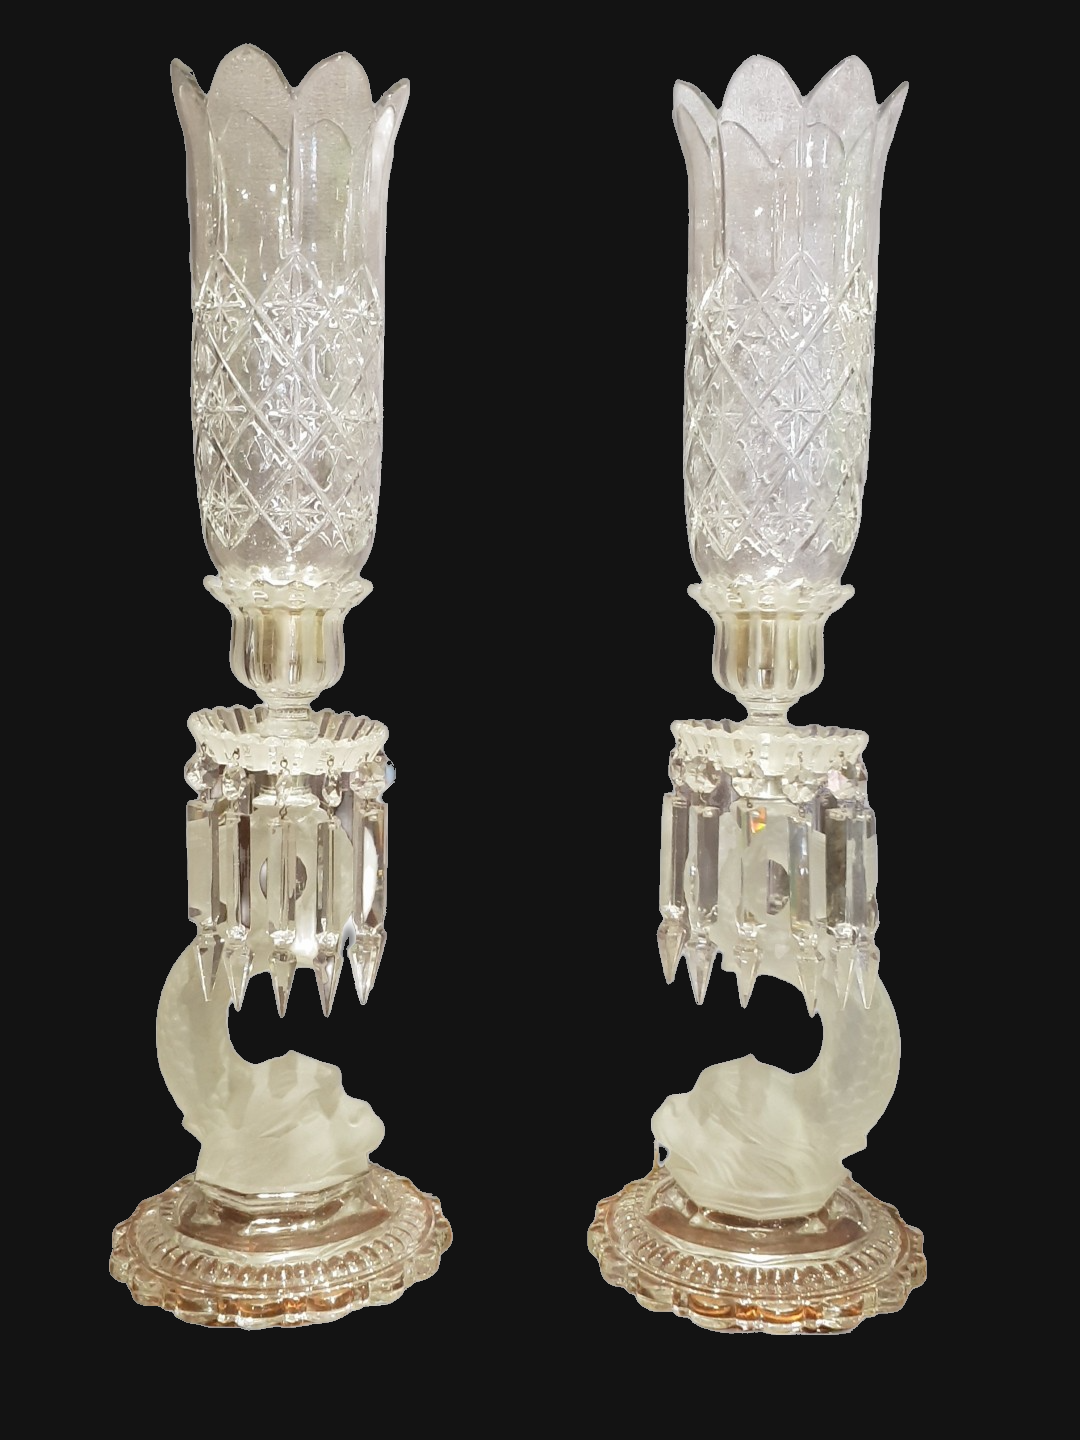 Lovely Pair of Crystal Dolphin  Hurricane Lamps